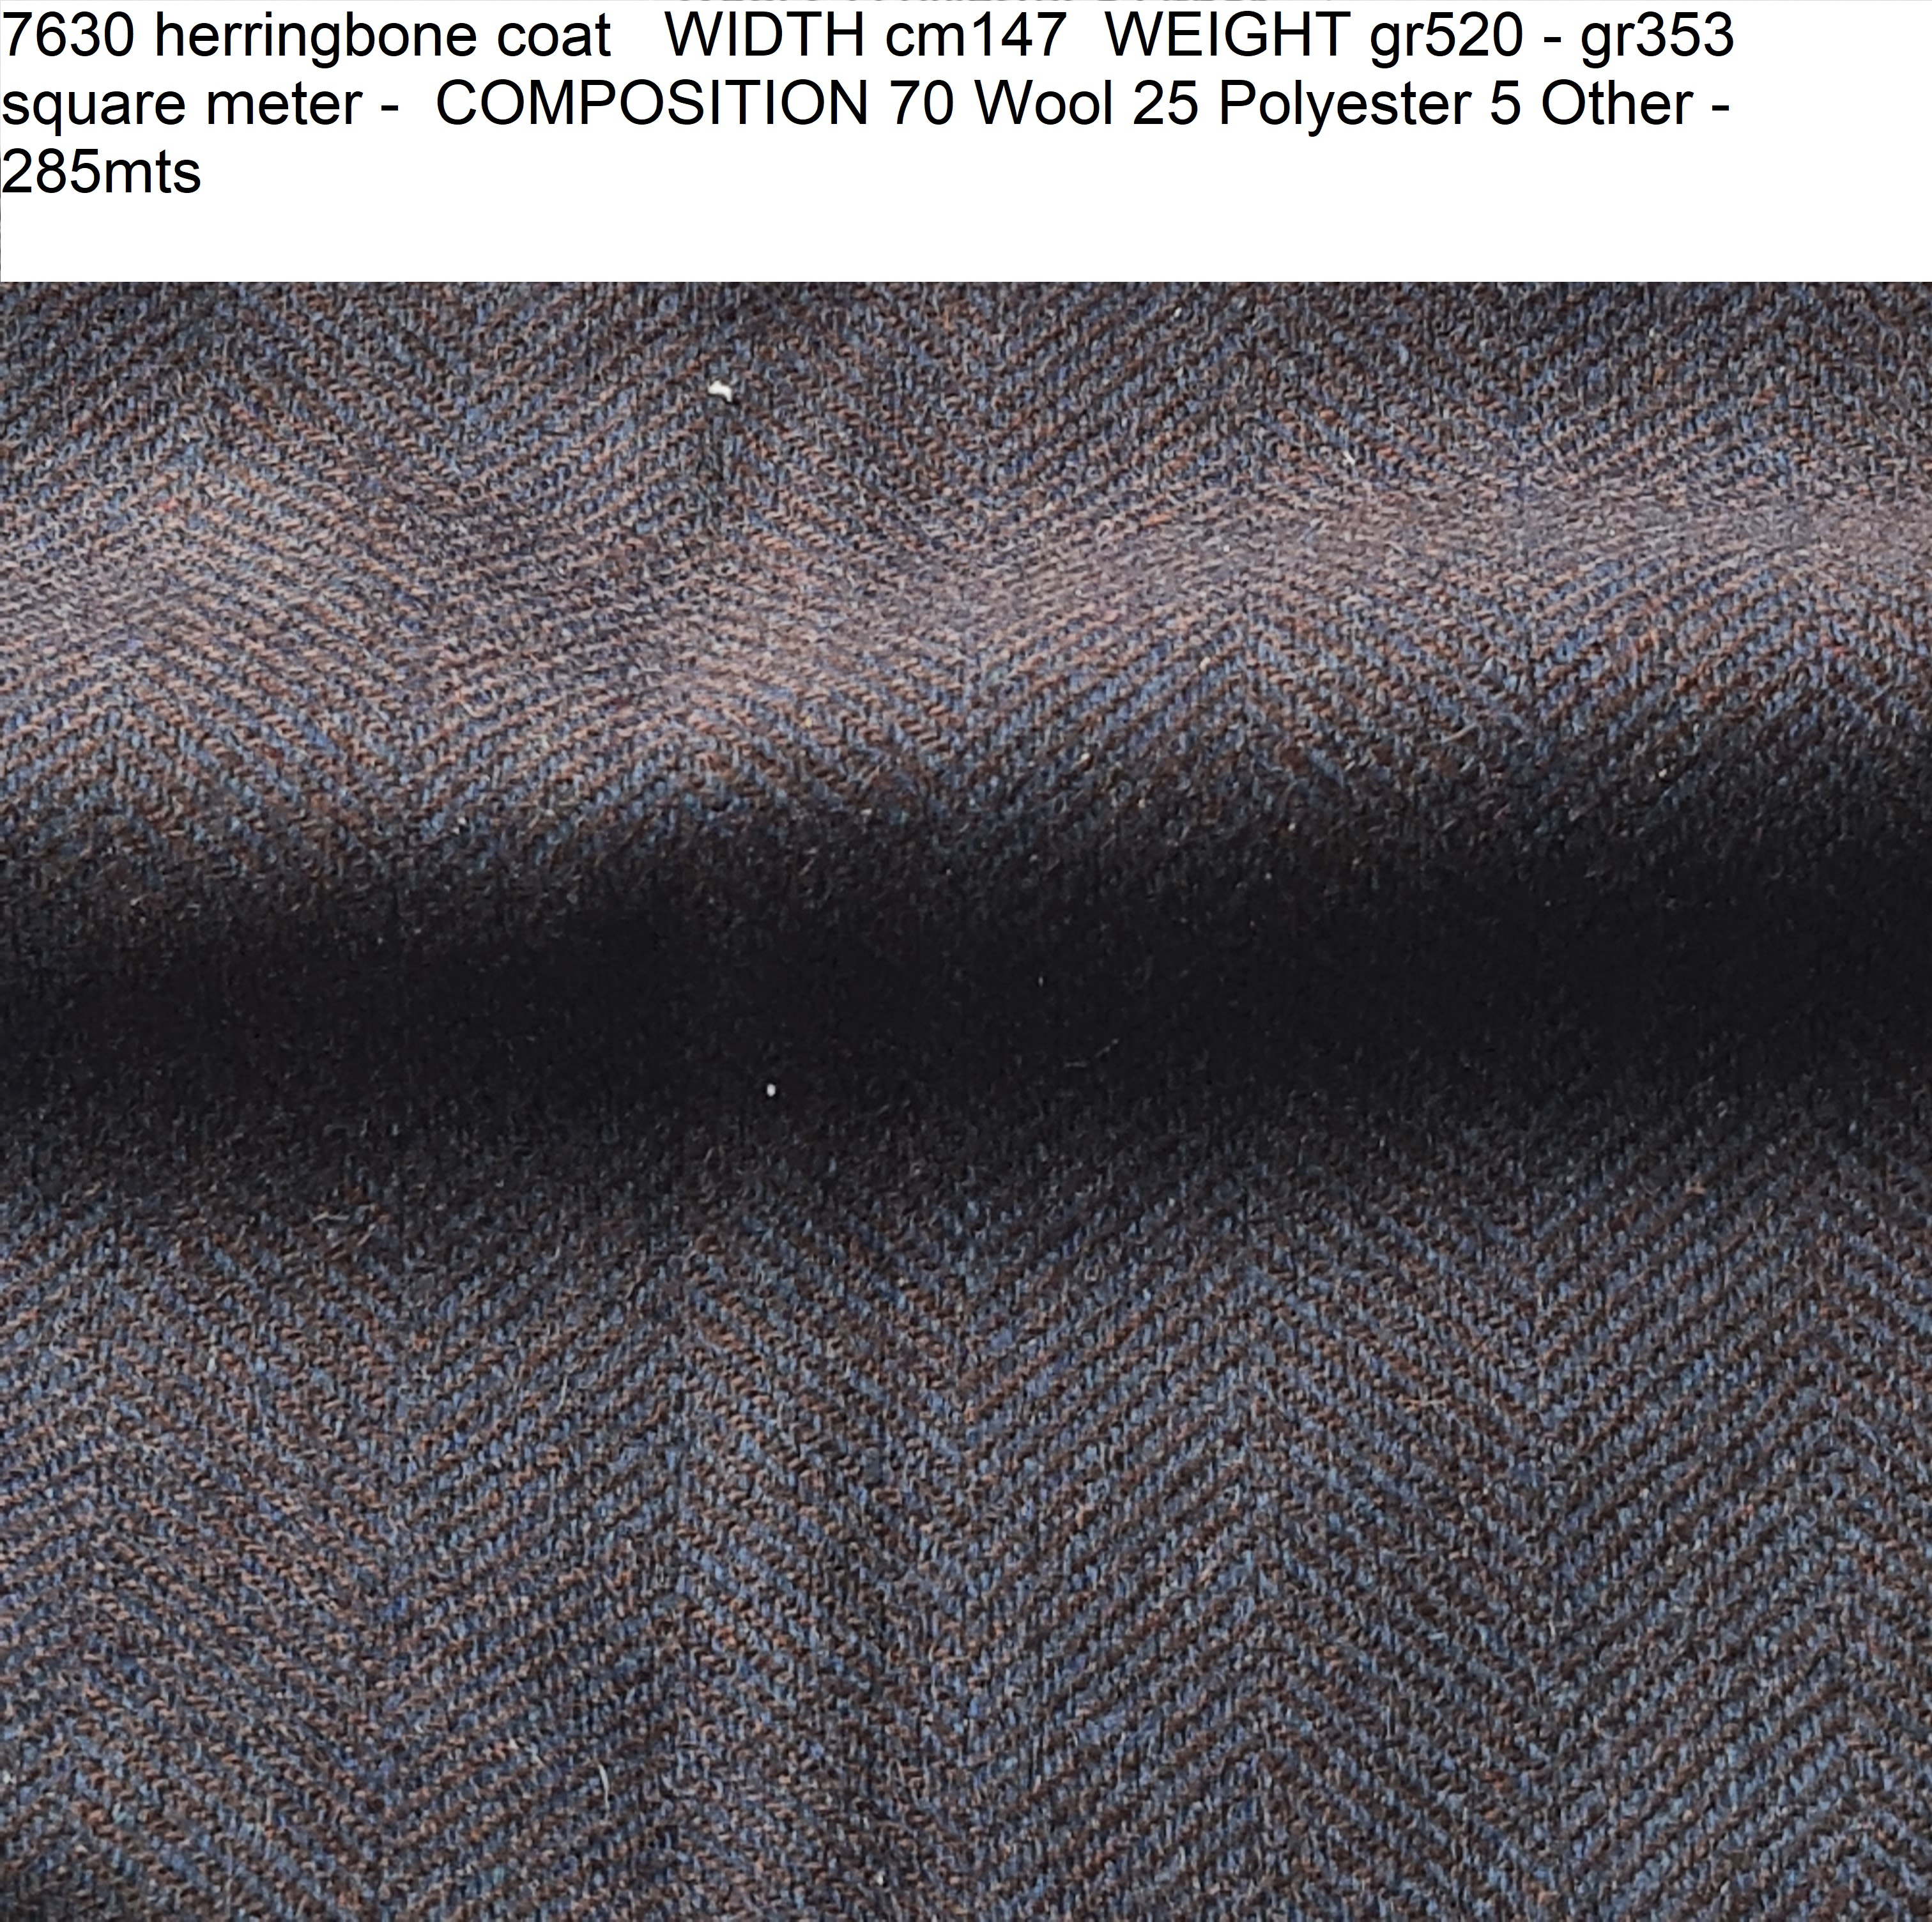 7630 herringbone coat WIDTH cm147 WEIGHT gr520 - gr353 square meter - COMPOSITION 70 Wool 25 Polyester 5 Other - 285mts